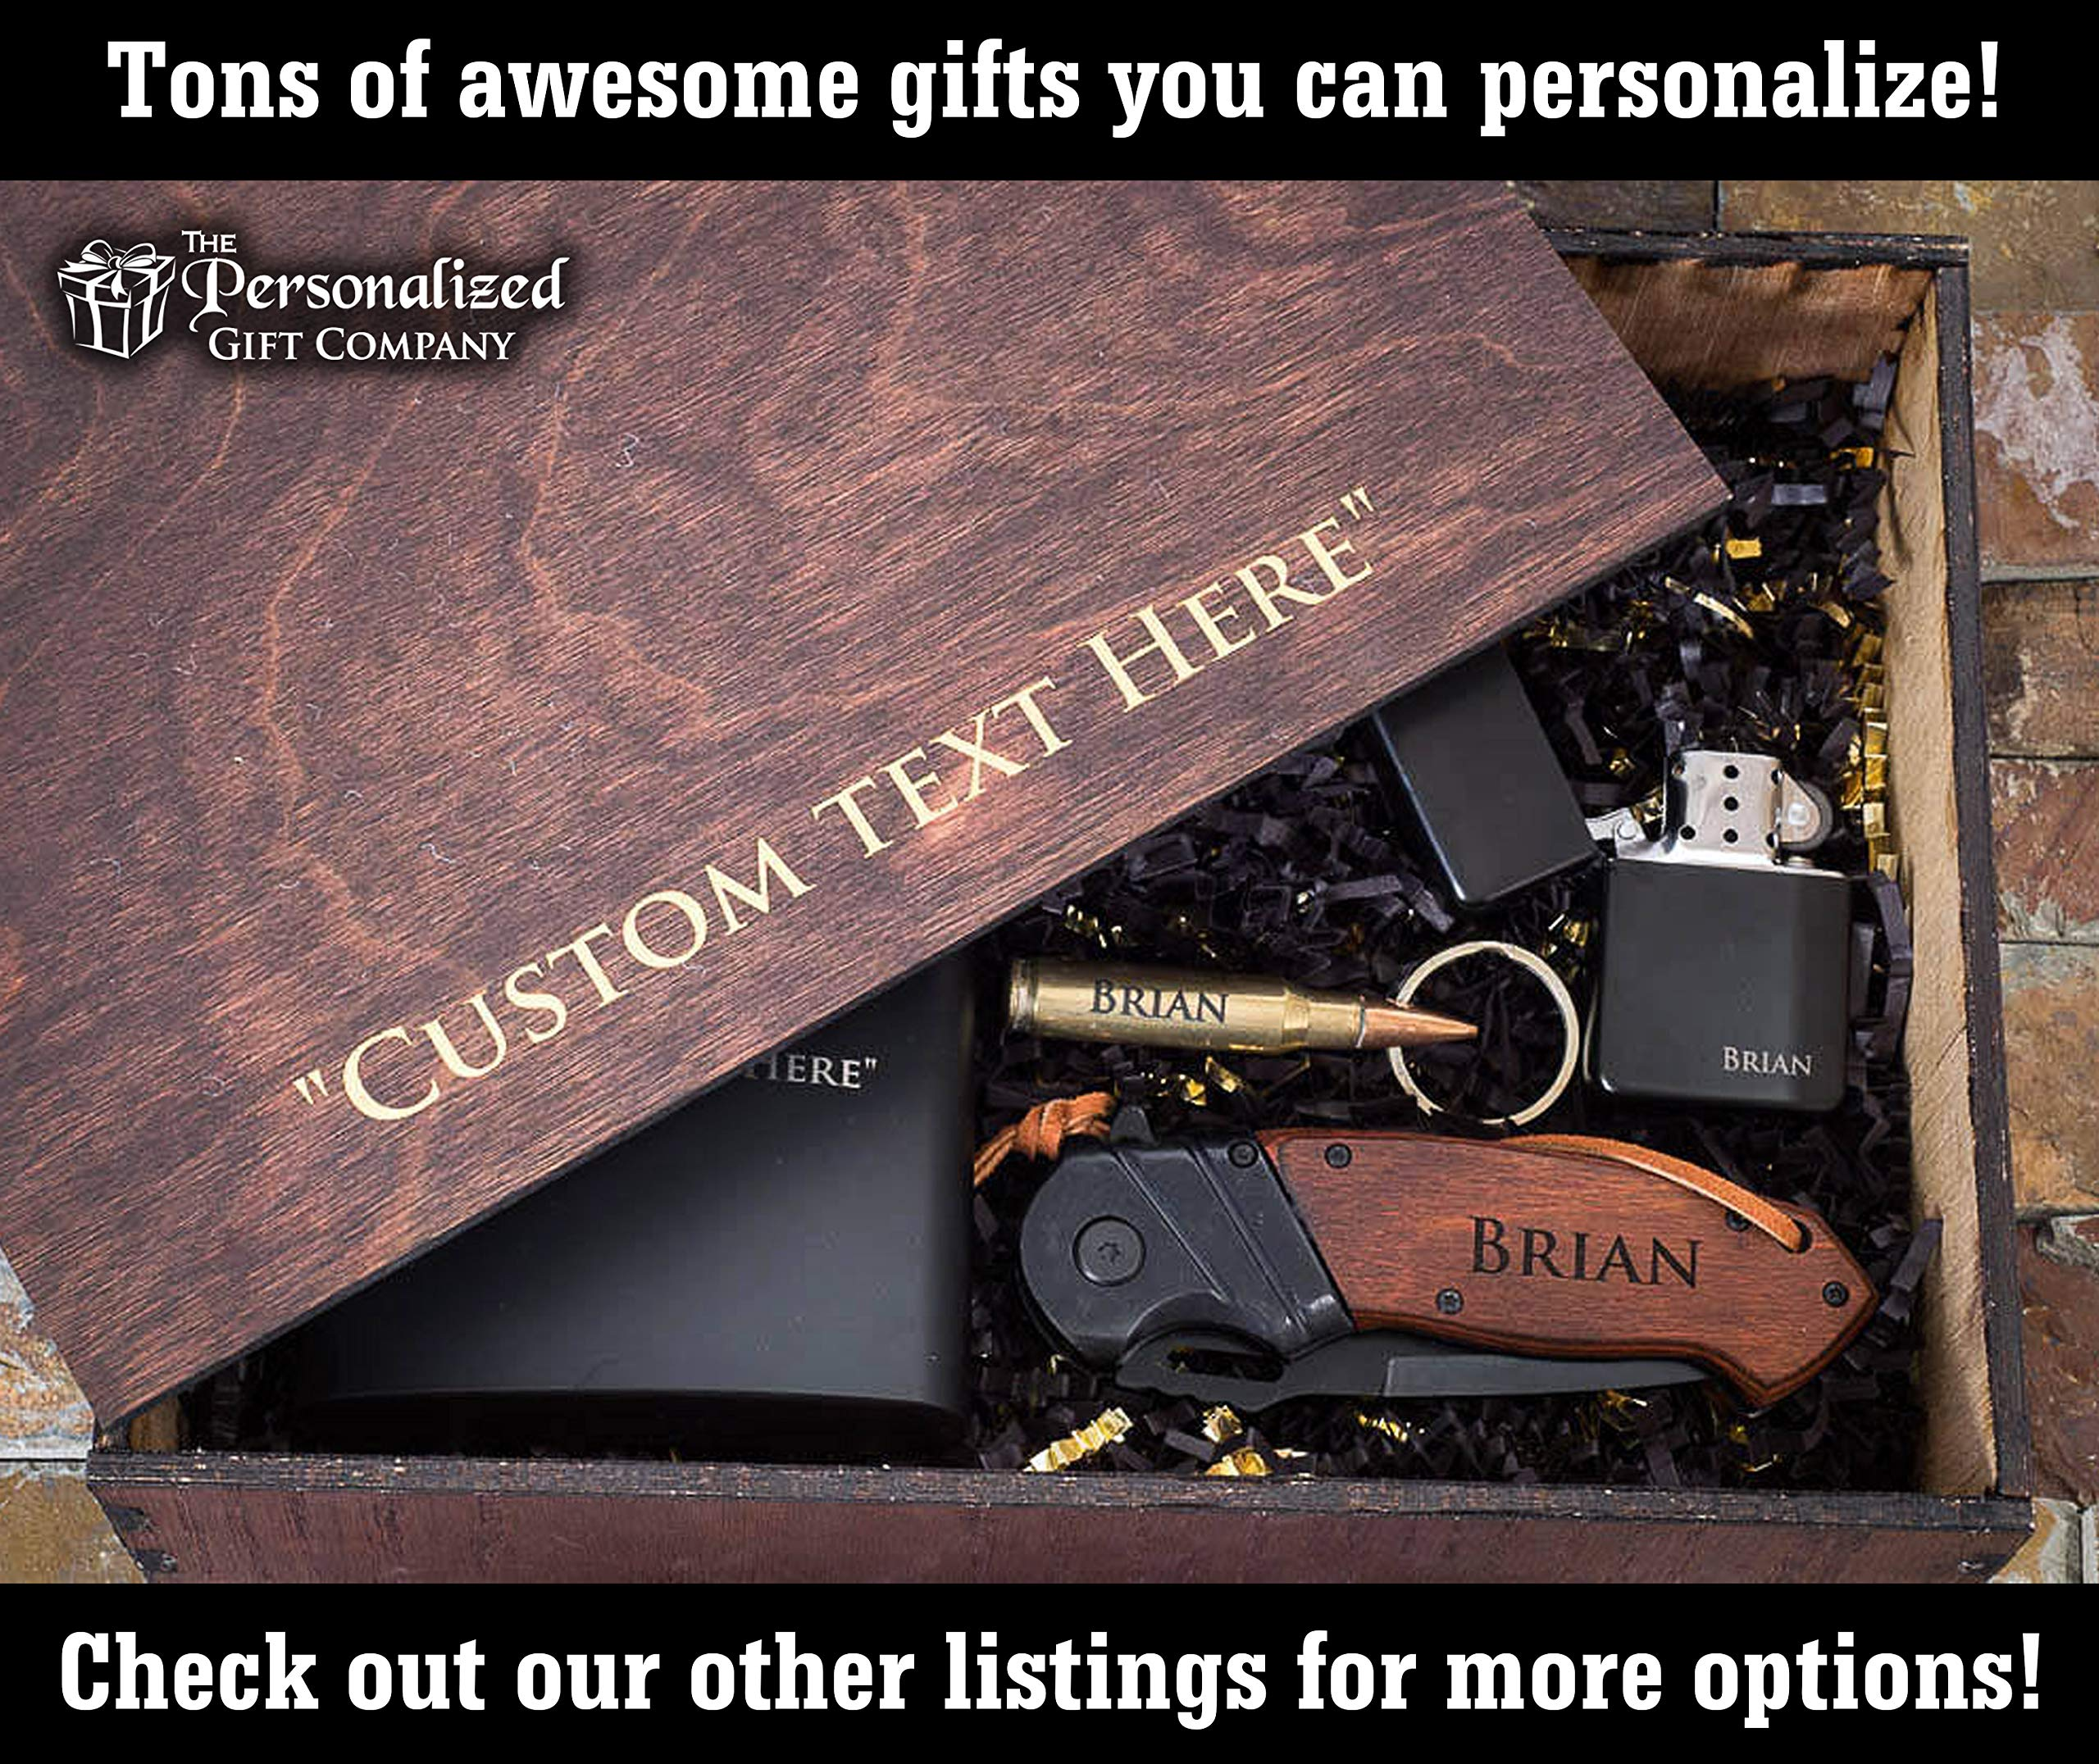 Personalized Gift Baskets for Men – Engraved Pocket Knife, Flask & Lighter + Gift Boxes with Lids – Groomsmen Gifts Box Set for Men by The Personalized Gift Co (Image #4)